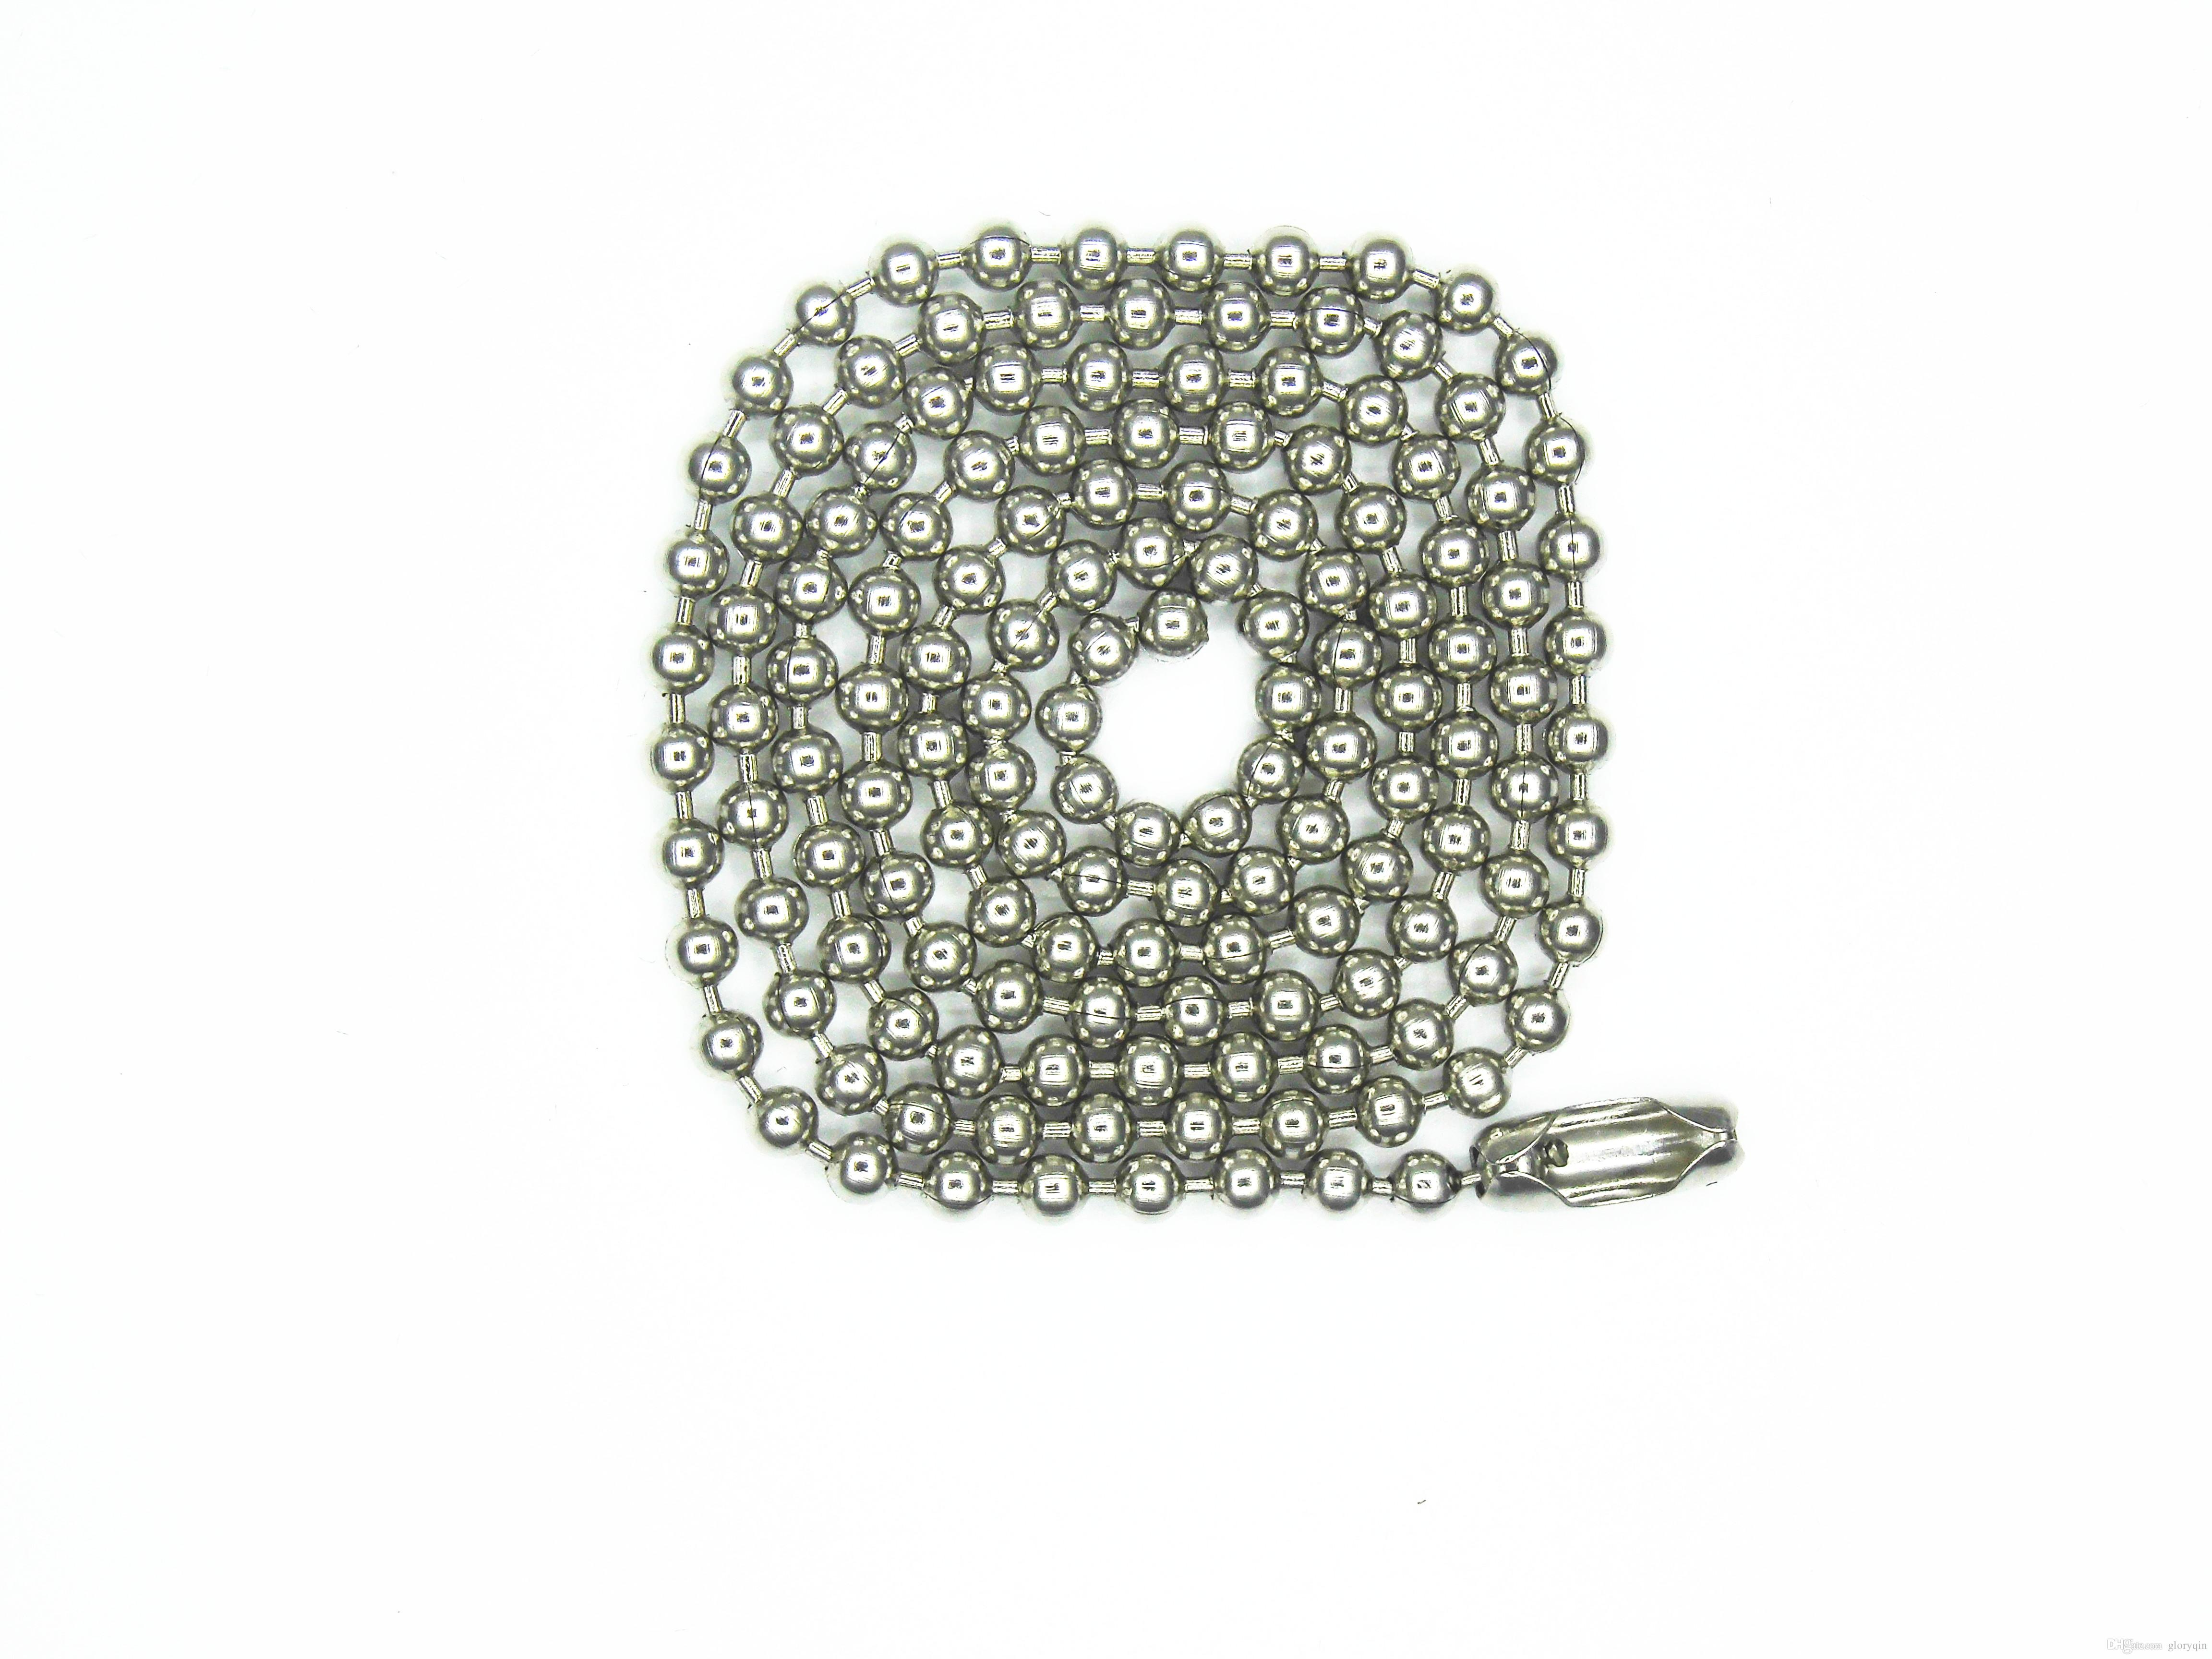 30 Inch Stainless Steel #8(4mm) Ball Chain Necklaces 10 Count beads chain necklace Jewellery making diy chain